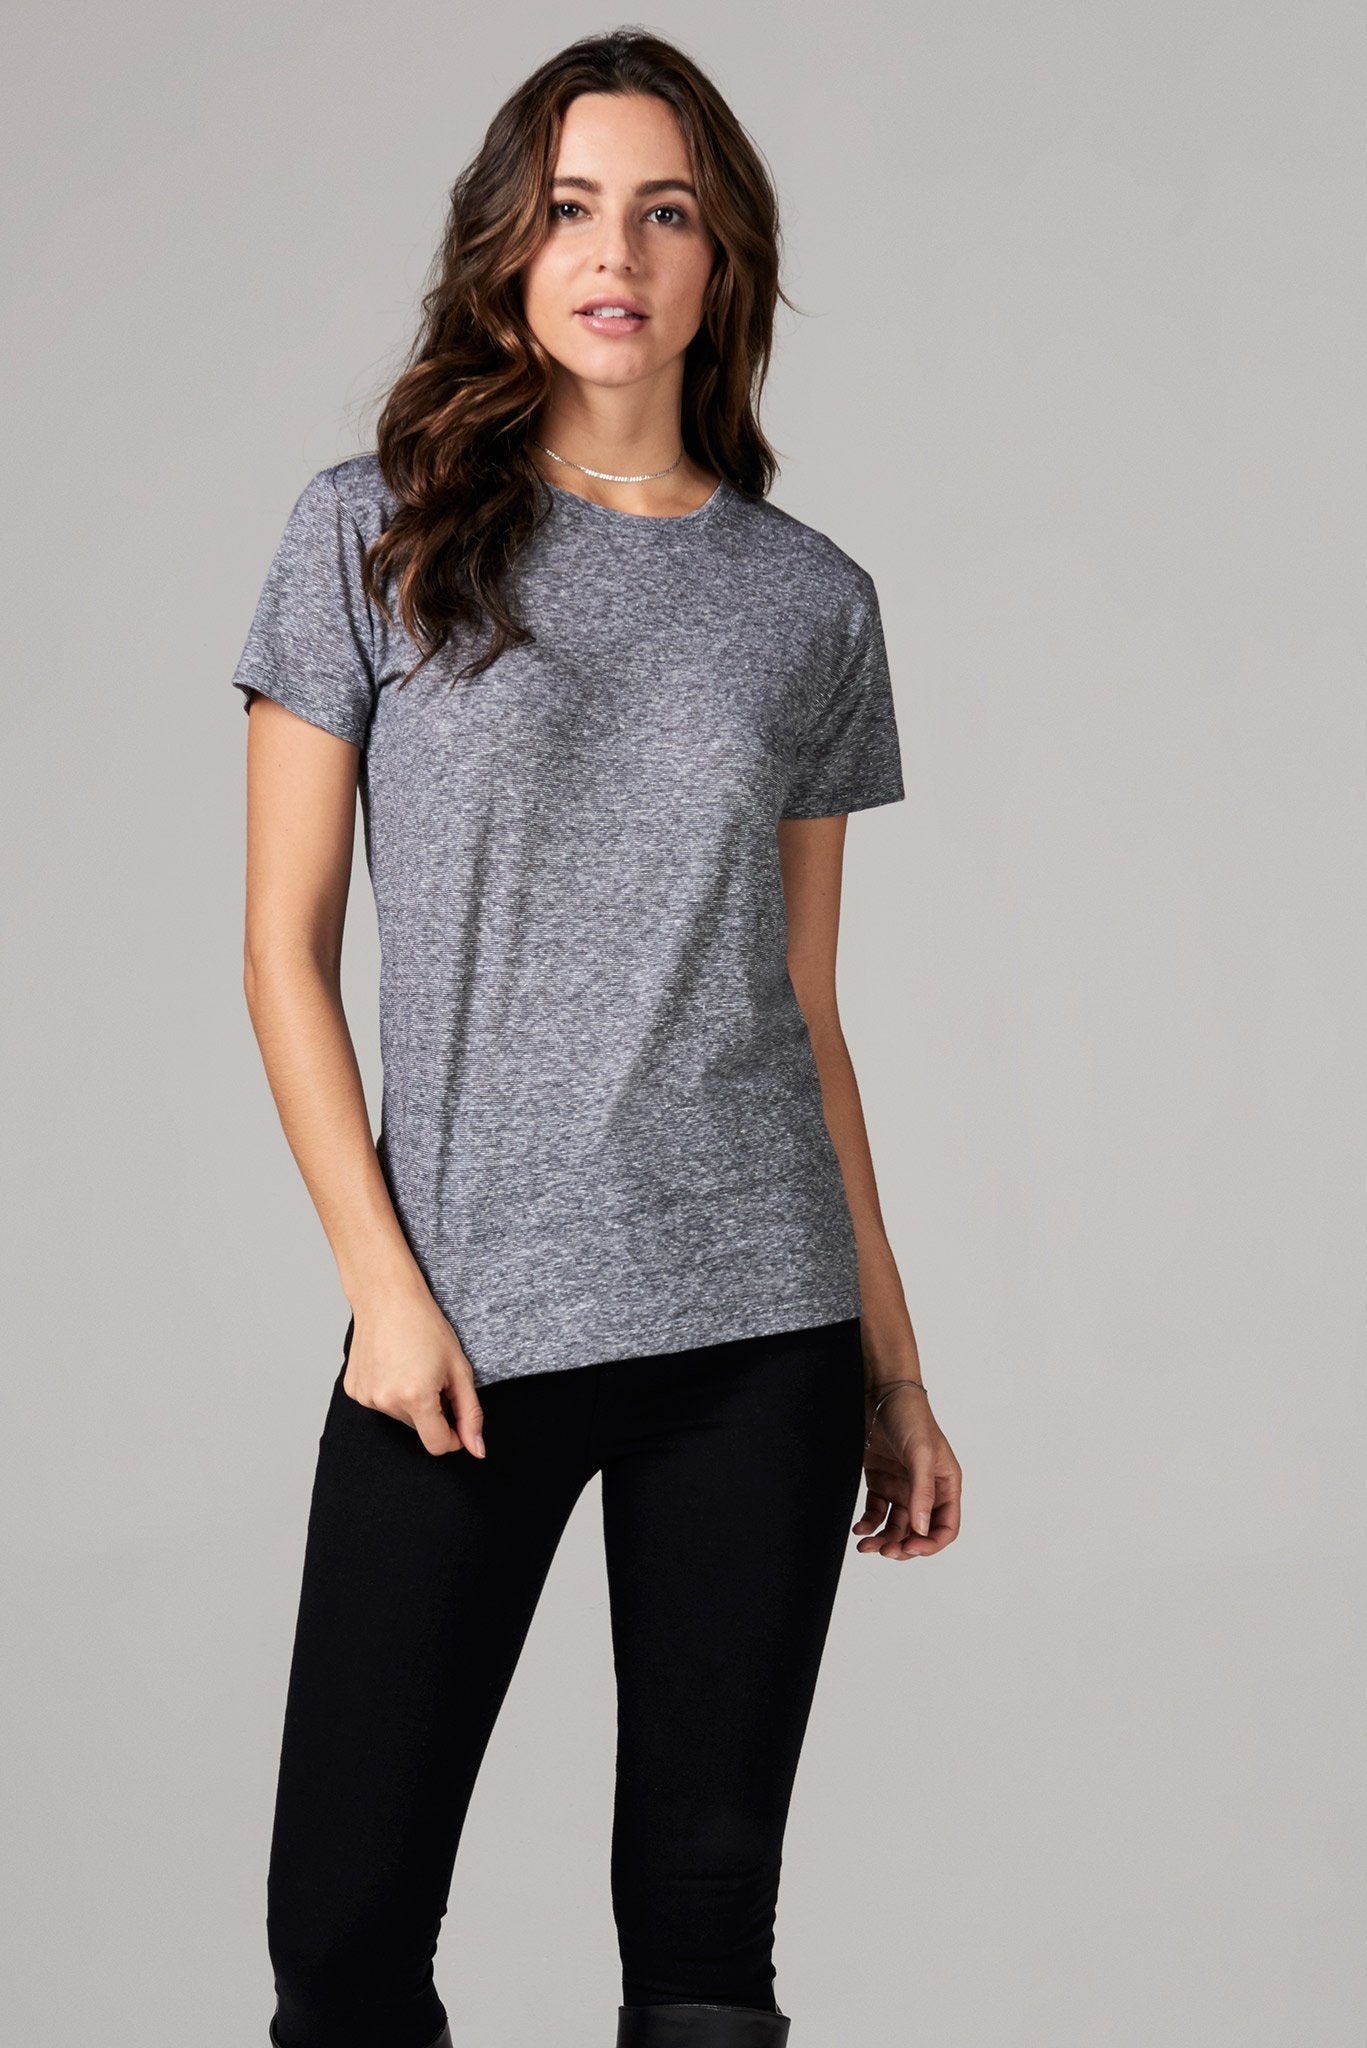 WOMEN'S CREW NECK TEE - MINI STRIPE